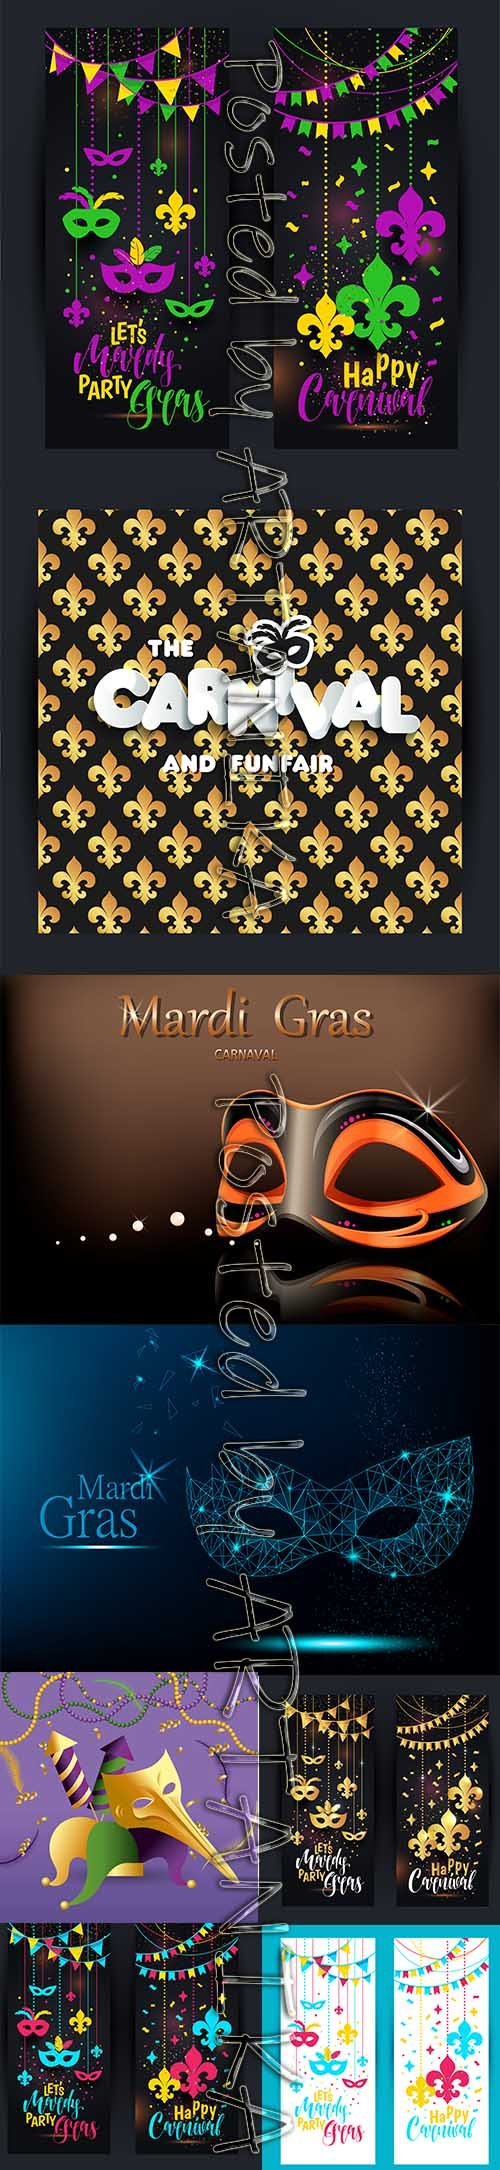 Mardi Gras Carnival Party Background Vector Pack Vol 7